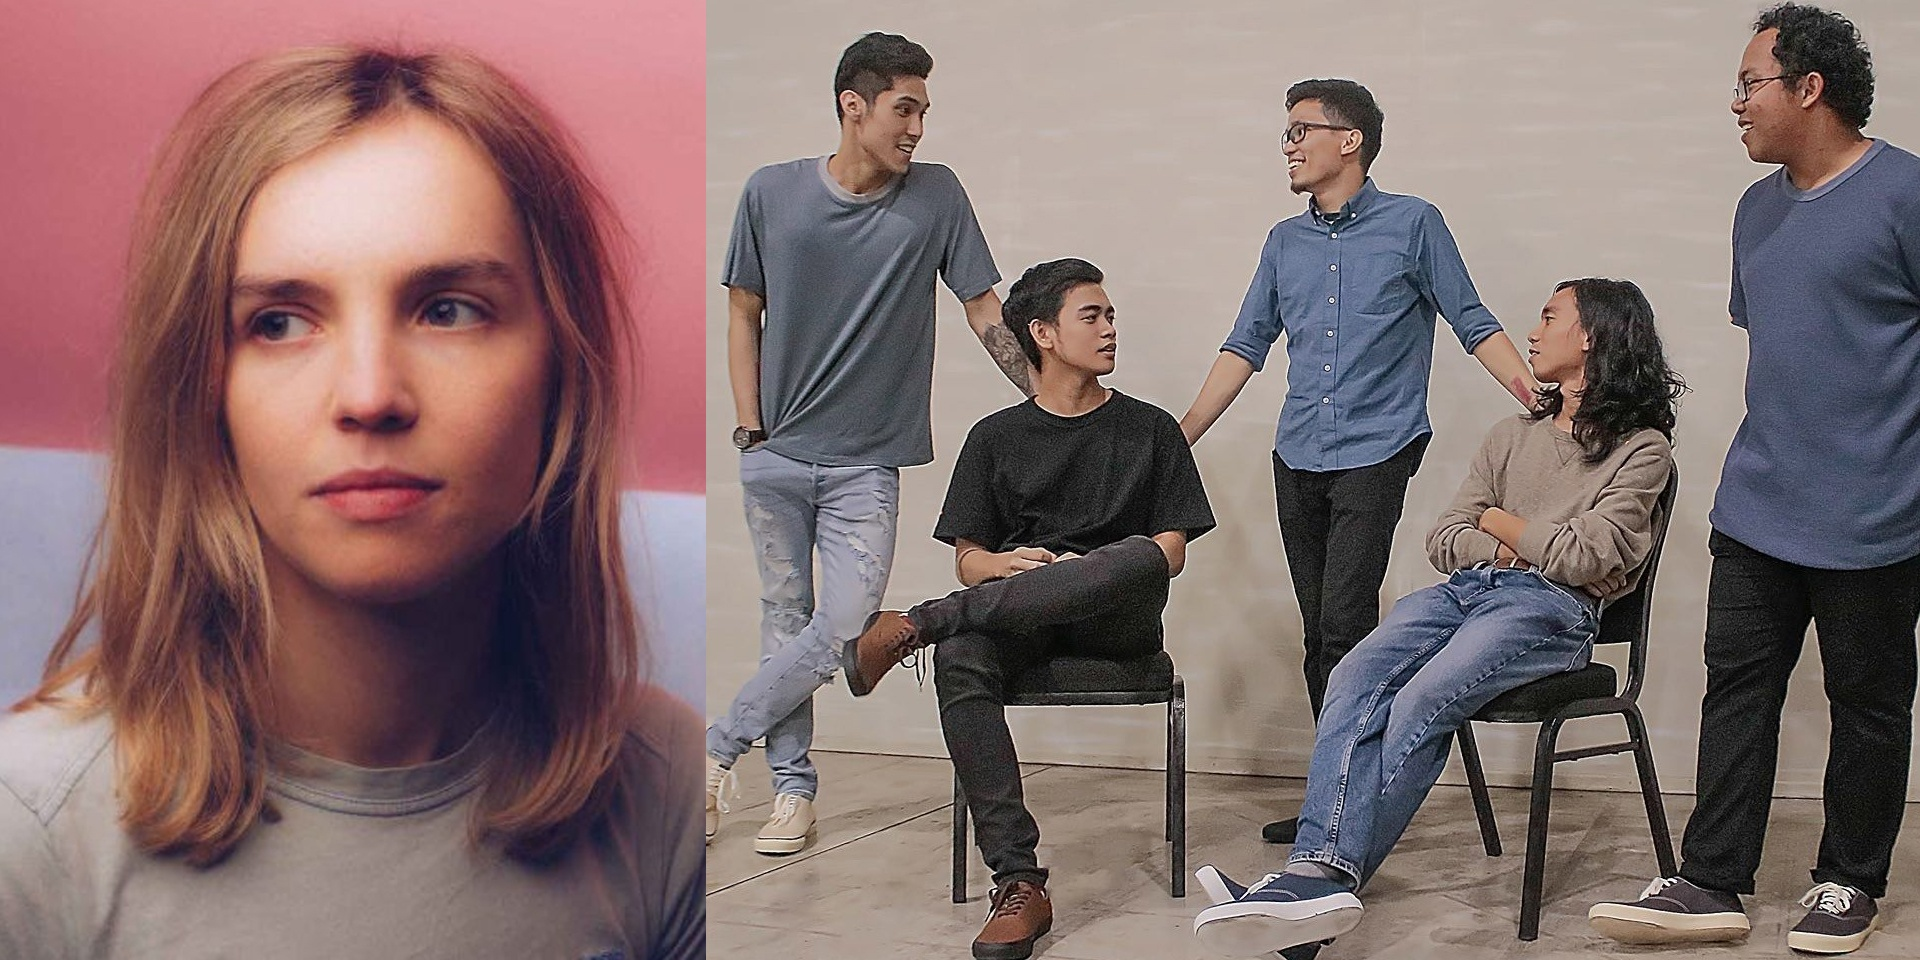 The Japanese House and Munimuni to perform at Karpos Live Mix 7